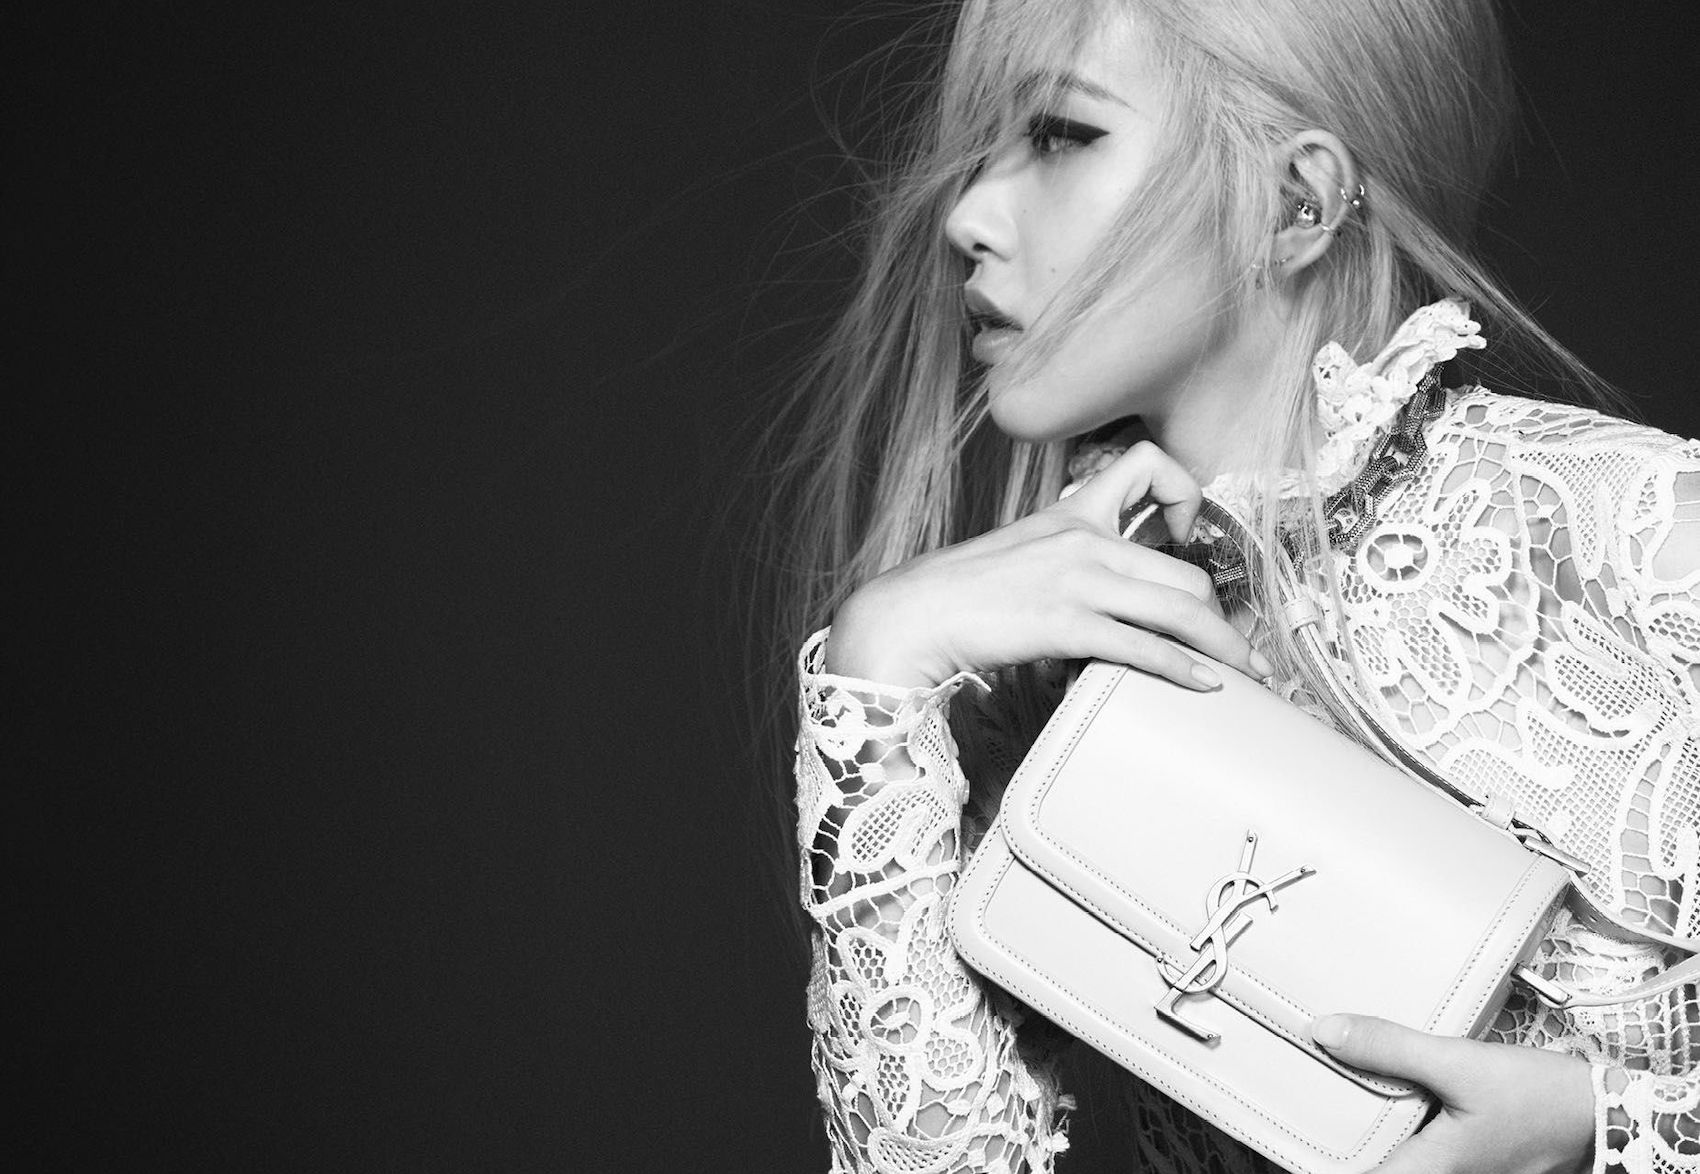 Anthony Vaccarello Appoints K-Pop's Rosé as the New Face of Saint Laurent post thumbnail image